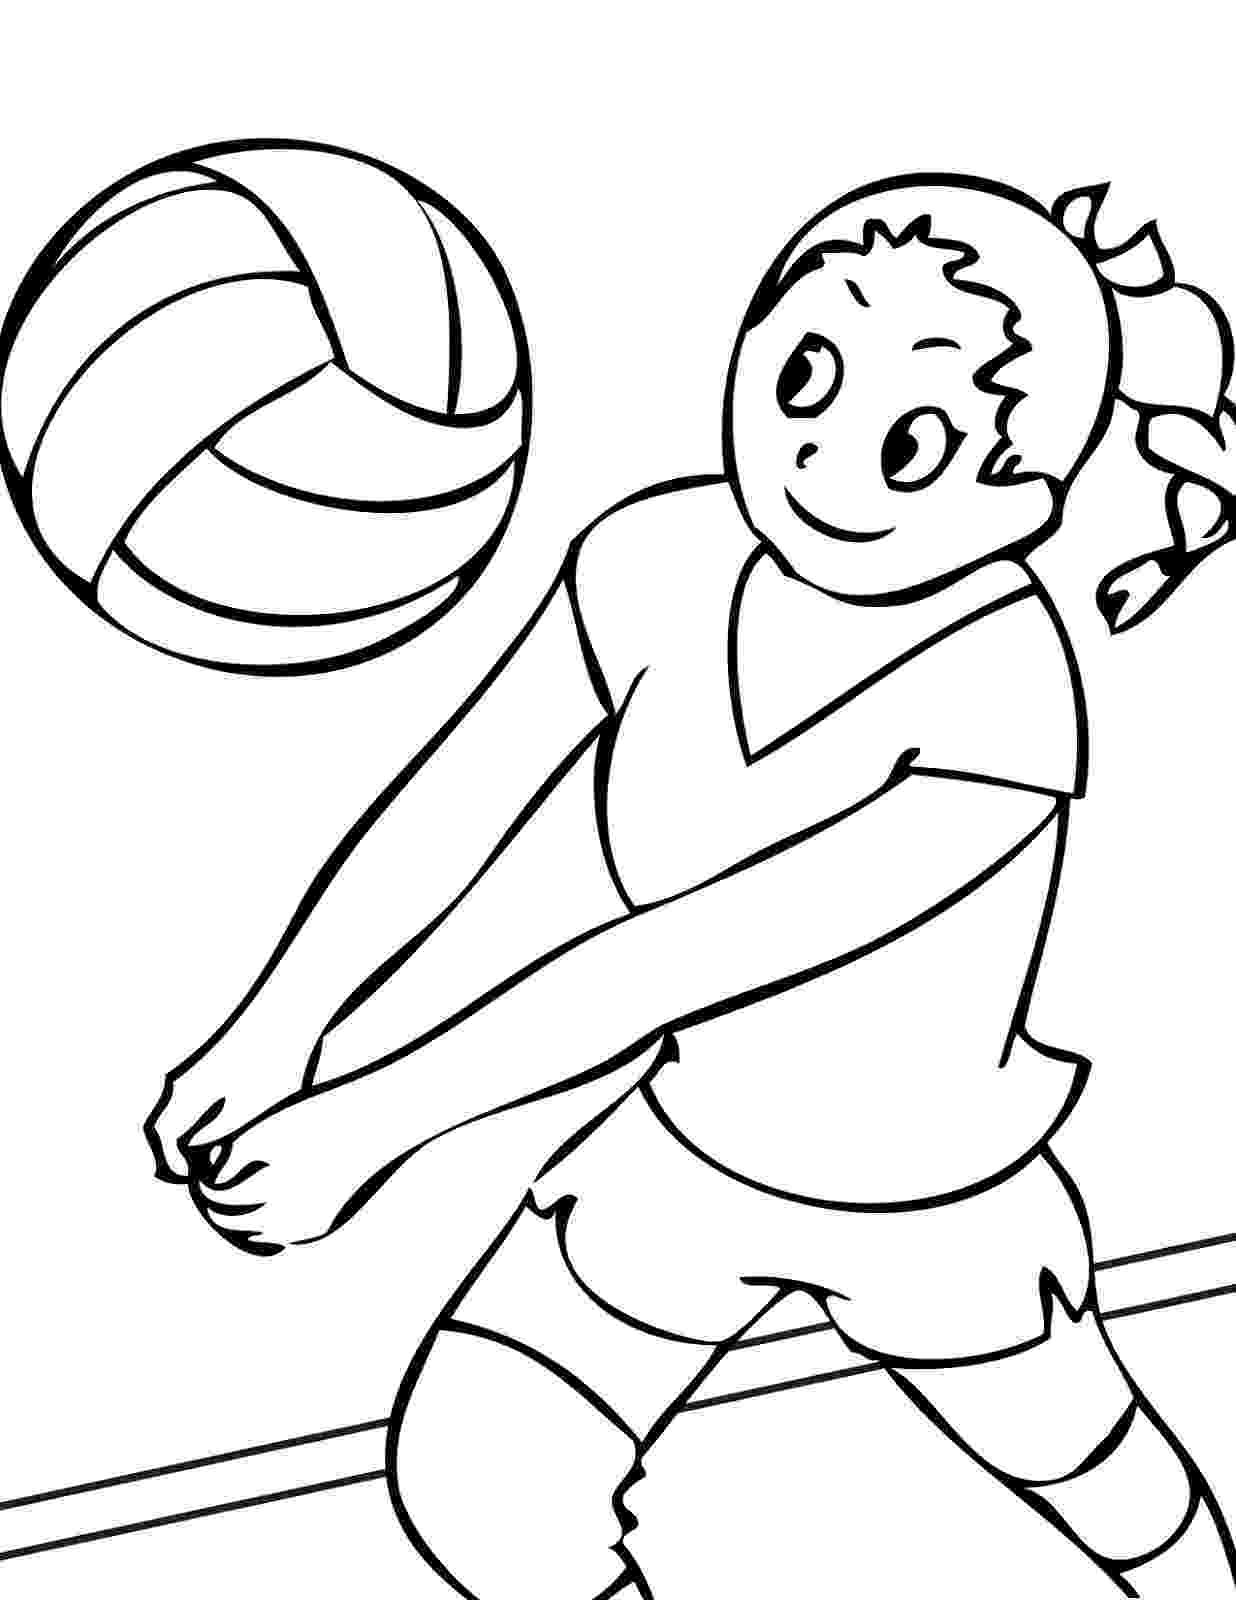 kids sports coloring pages free printable sports coloring pages for kids kids coloring pages sports